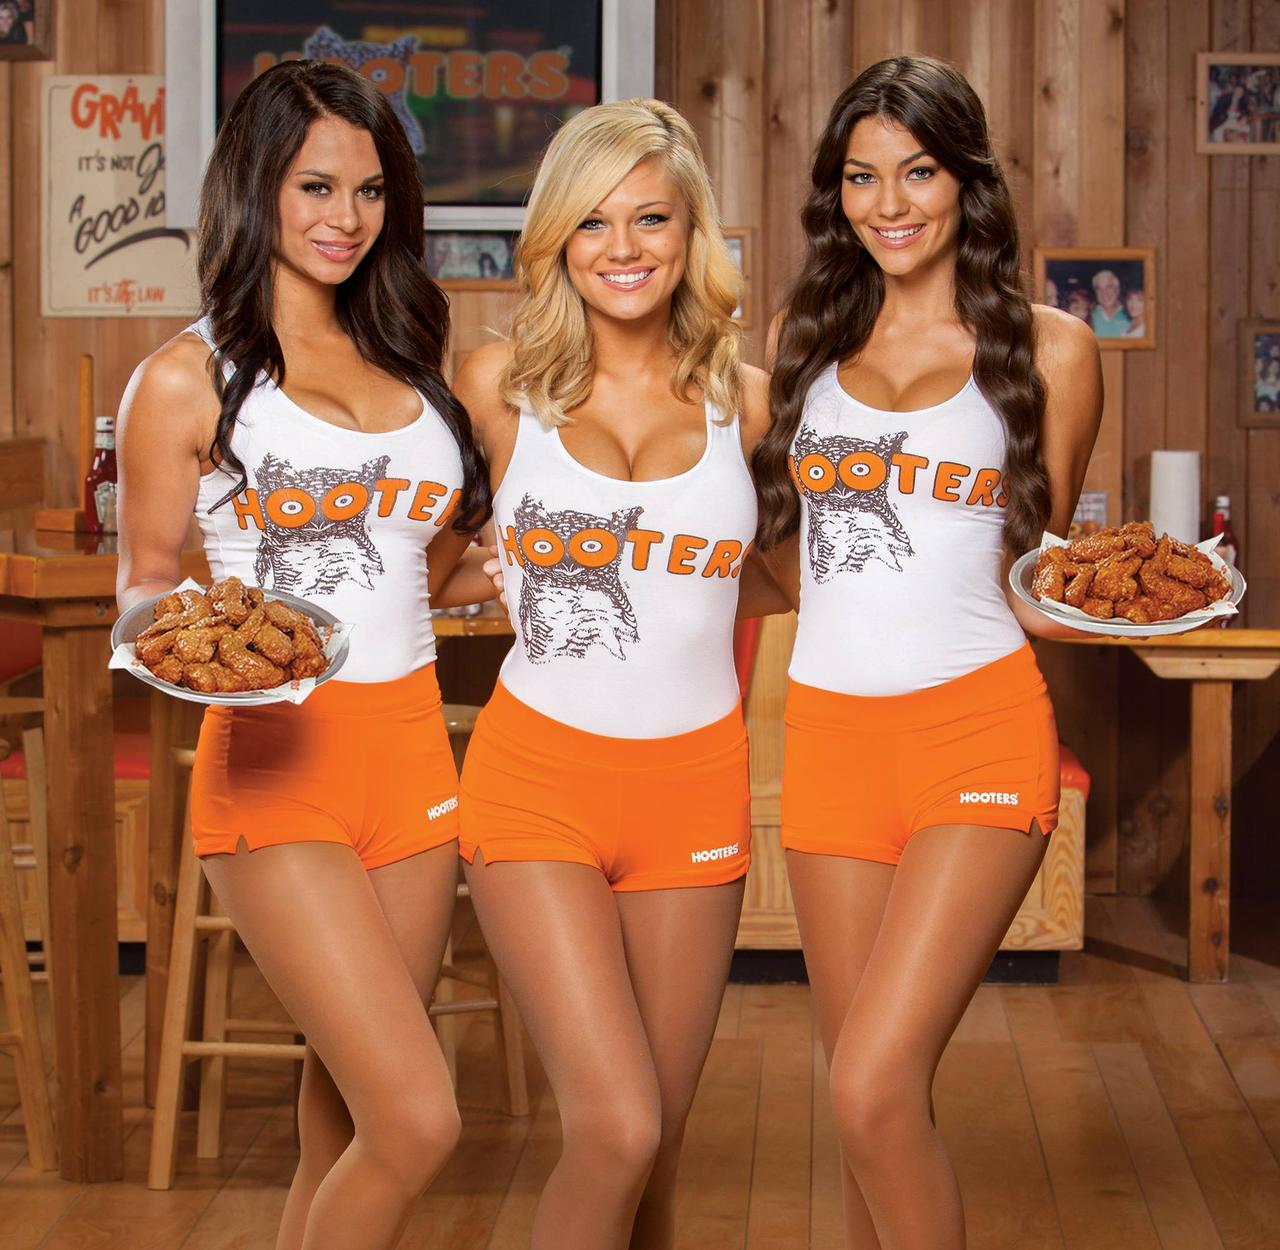 At Hooters youll find craveable food and wings cold beer sports and of course Hooters Girls View our menu online and find a location near you